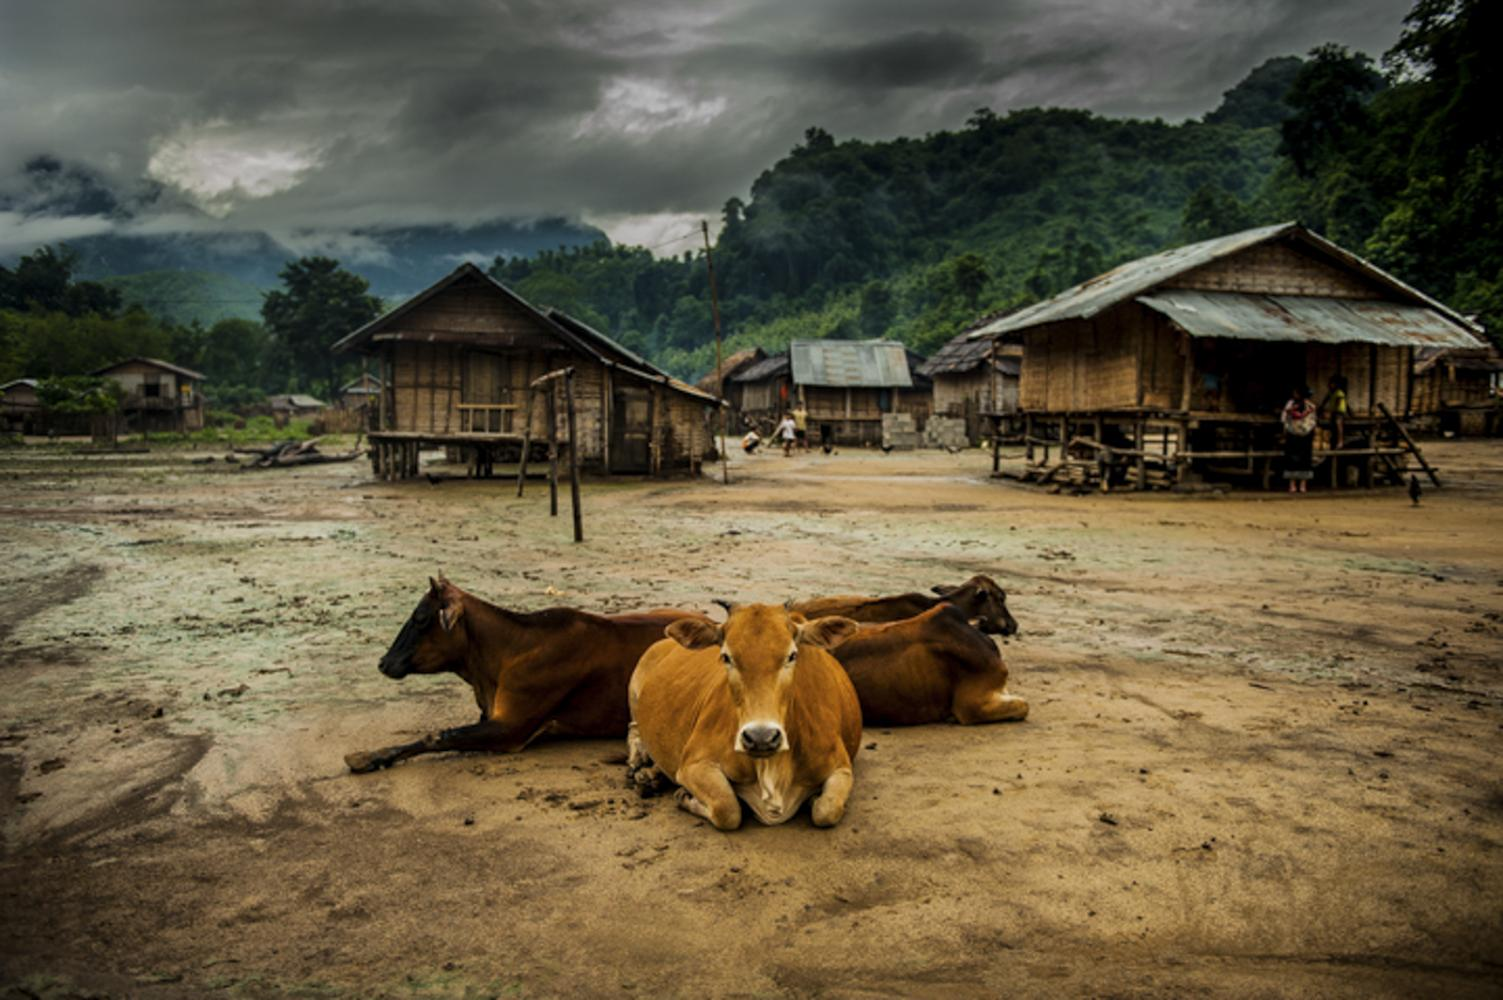 Cows surround the entrance of a small rice farming village in Laos.